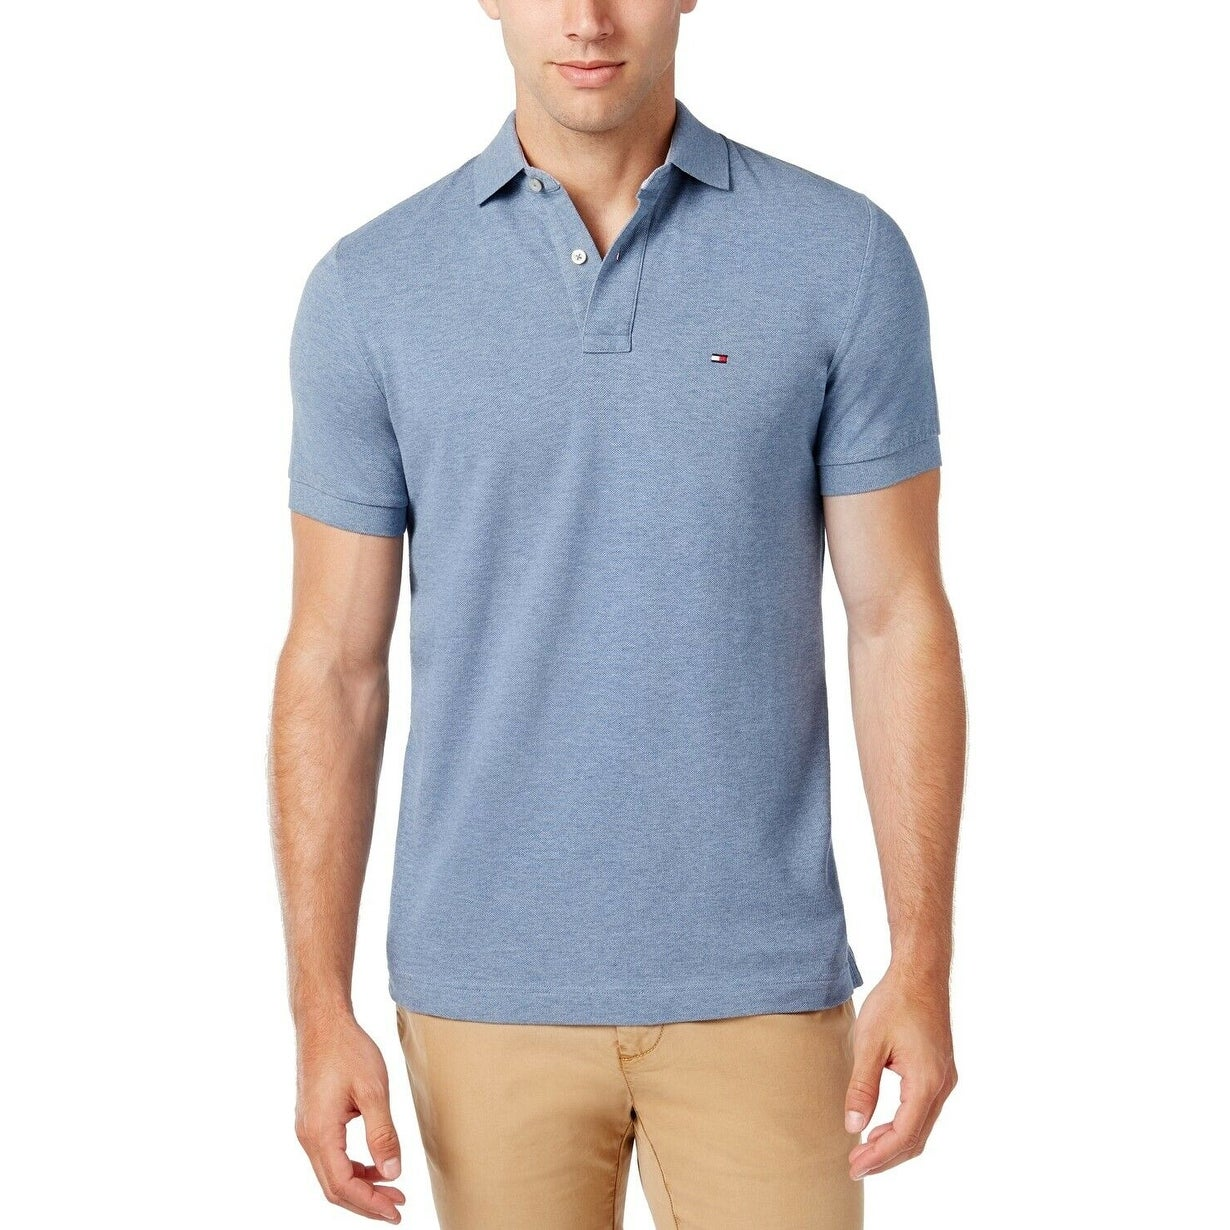 e56a5a64 Tommy Hilfiger Shirts | Find Great Men's Clothing Deals Shopping at  Overstock